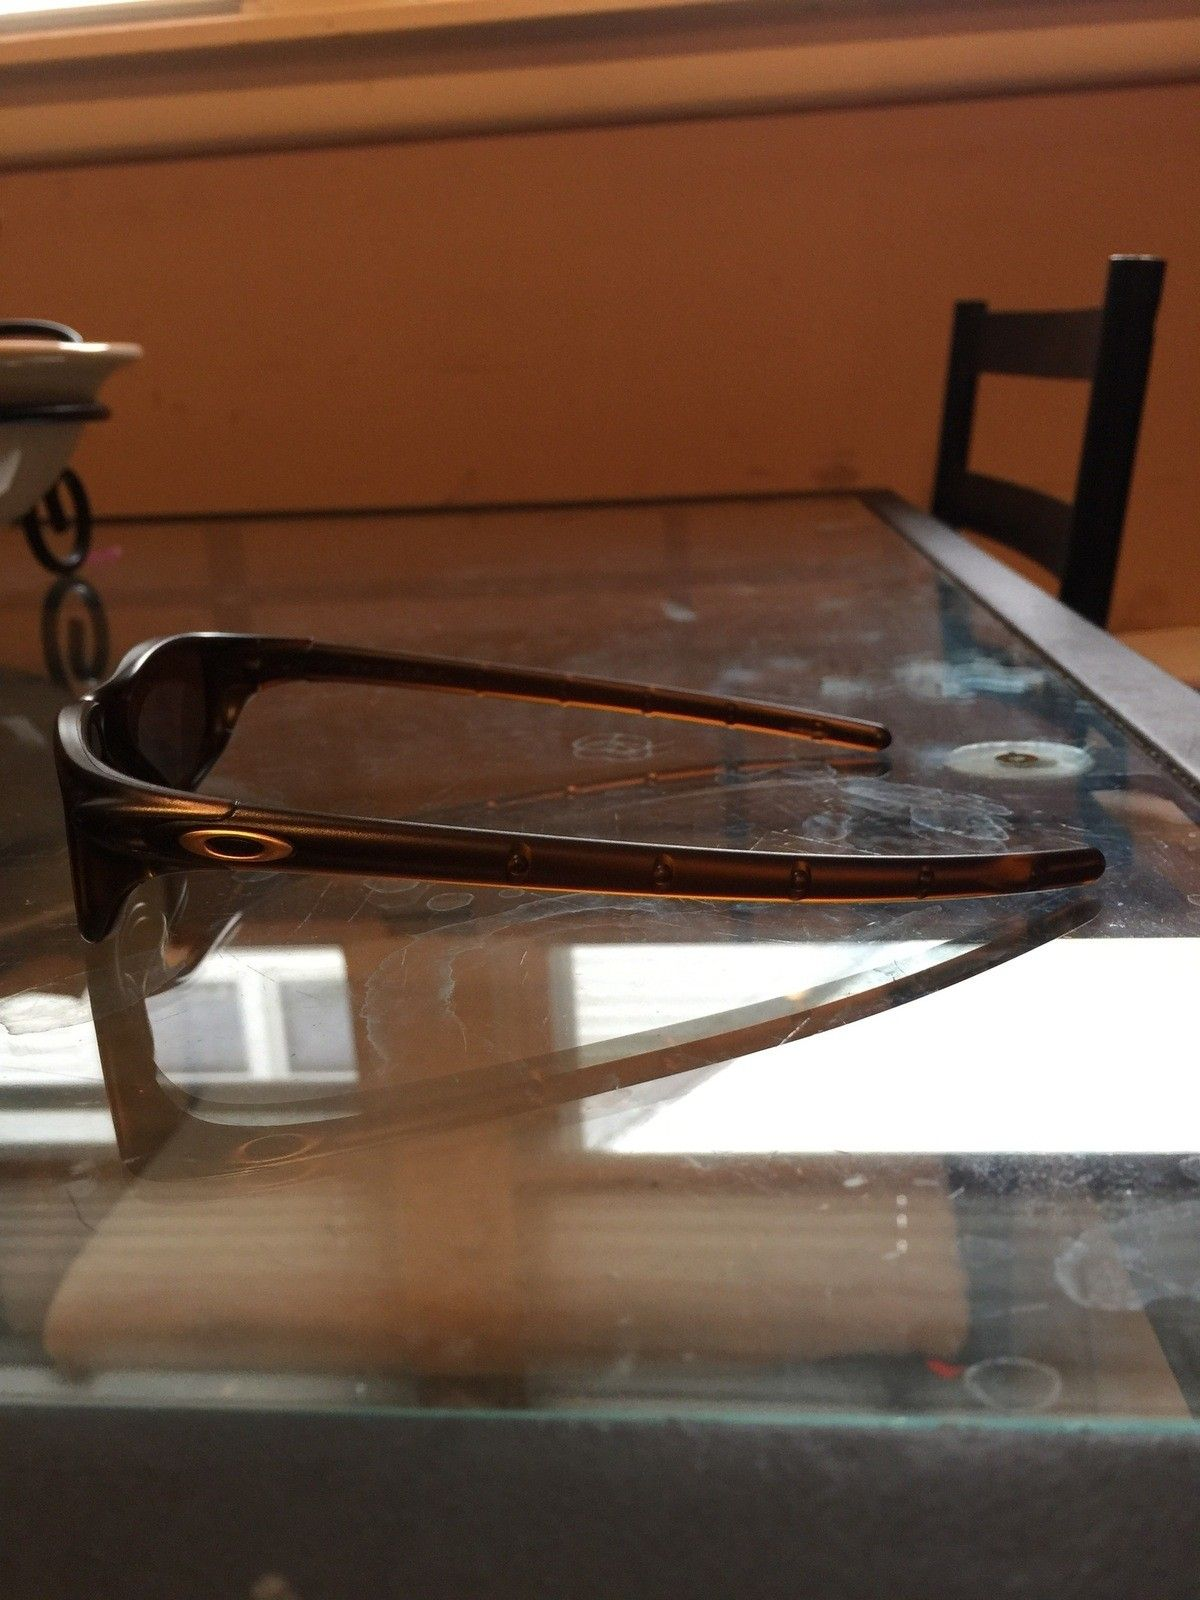 """Several items: Holbrooks, Frogskins, """"project Scar"""", Four, Mag Four S Plasma, X-Metal Stand - IMG_7040.jpg"""